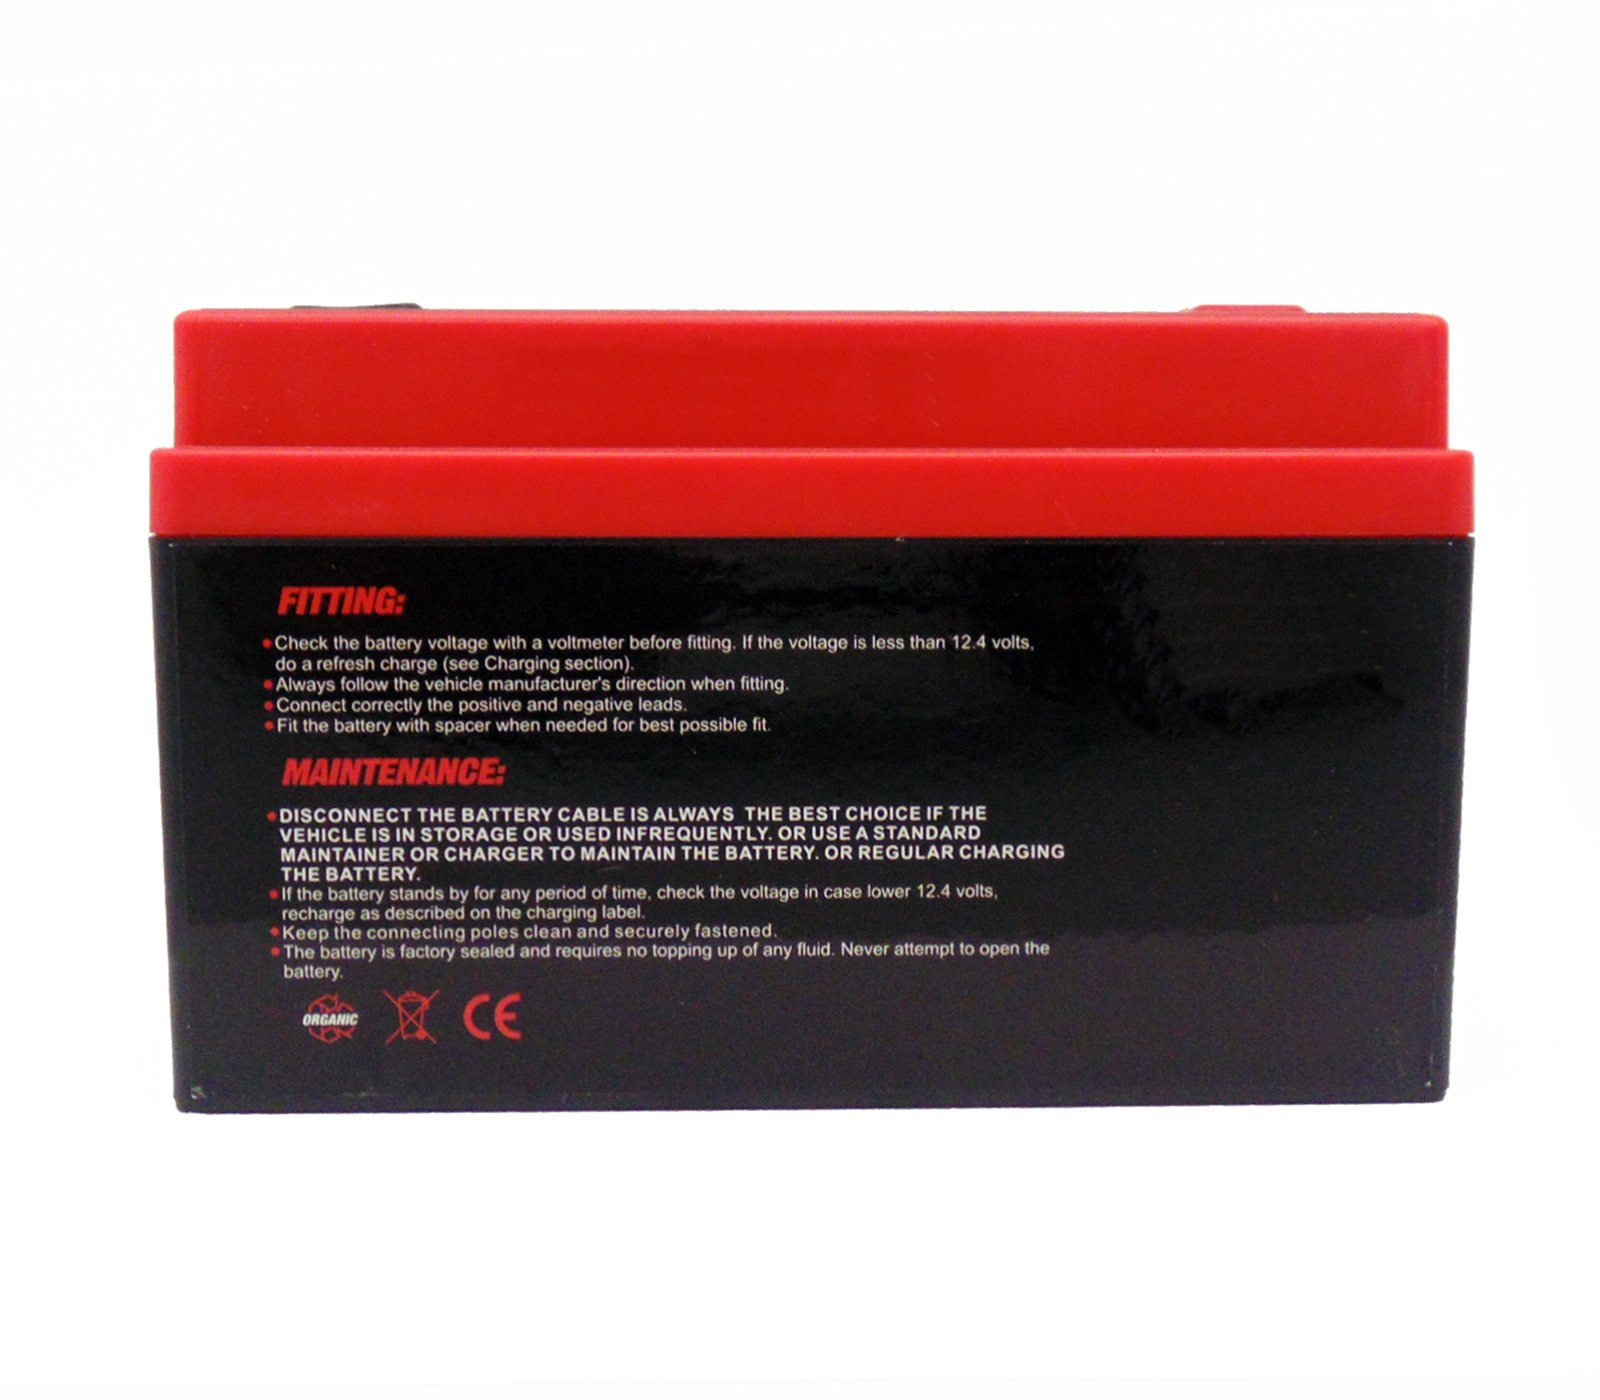 YTZ12S Z12S Lithium Ion Sealed Powersports Battery 12V - 300 CCA - NO Spills, Fully Charged and Activated Ready to Use (MMG4)